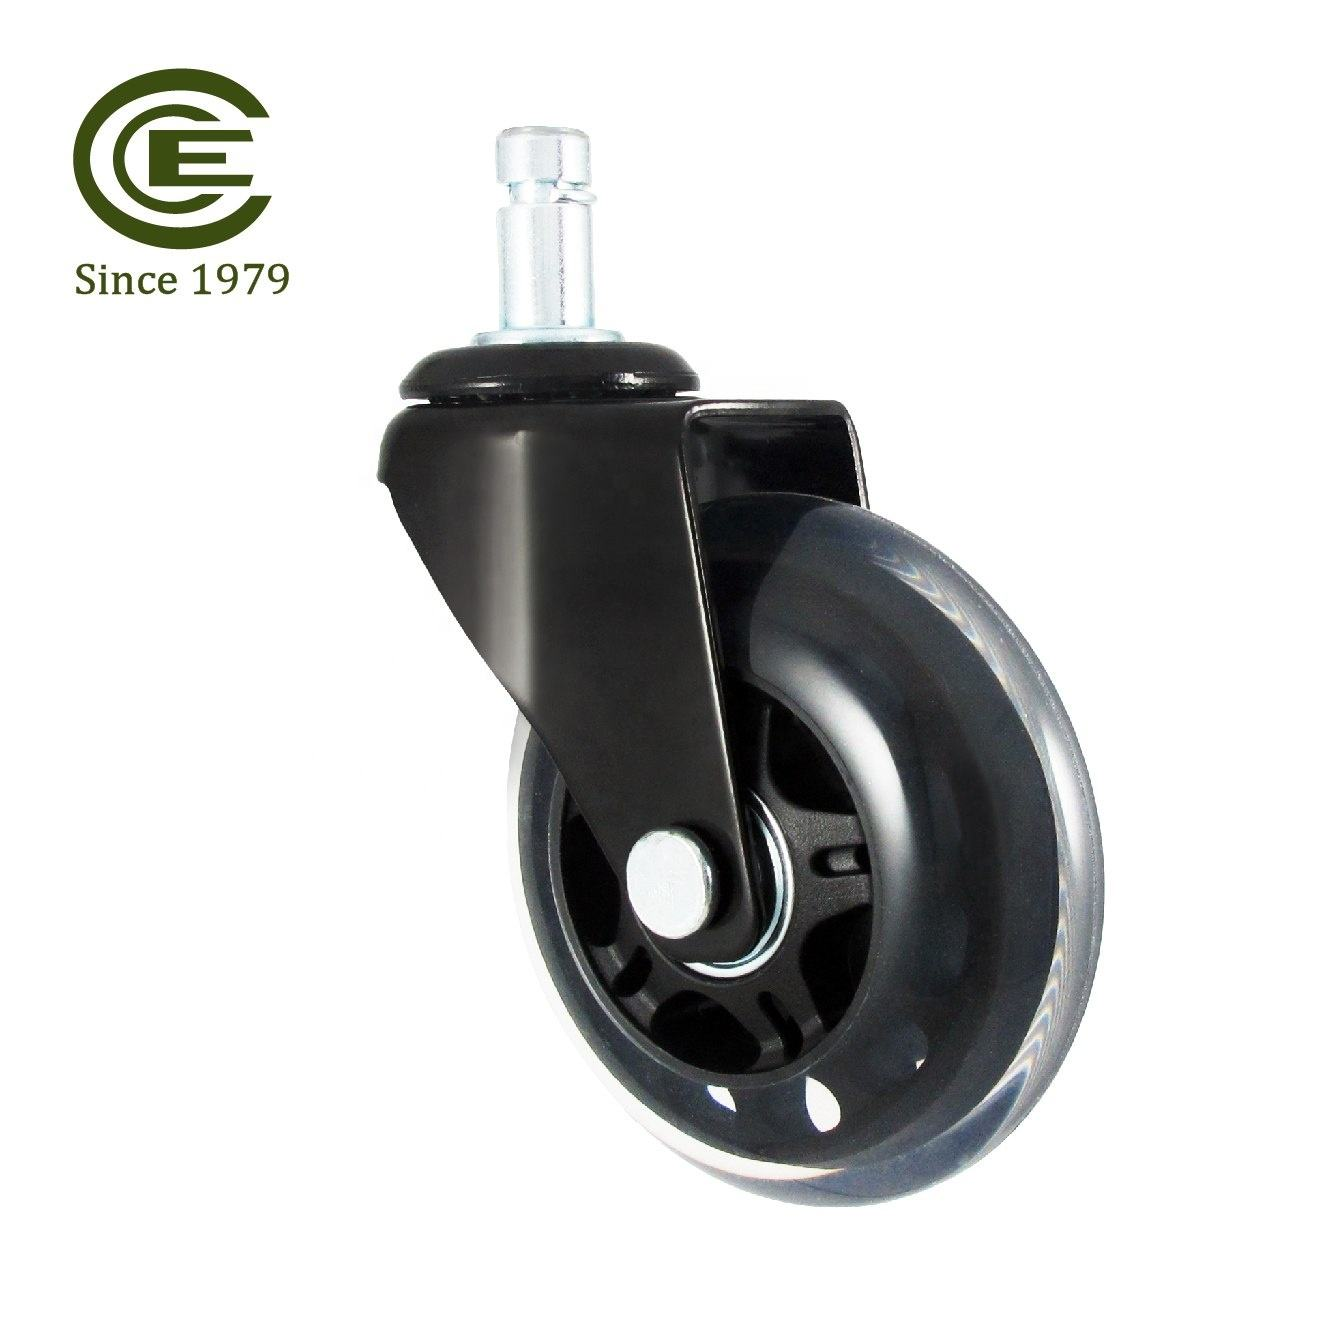 CCE Caster 2019 New Product 3 Inch PU Silent Bearings Furniture Wheels Caster